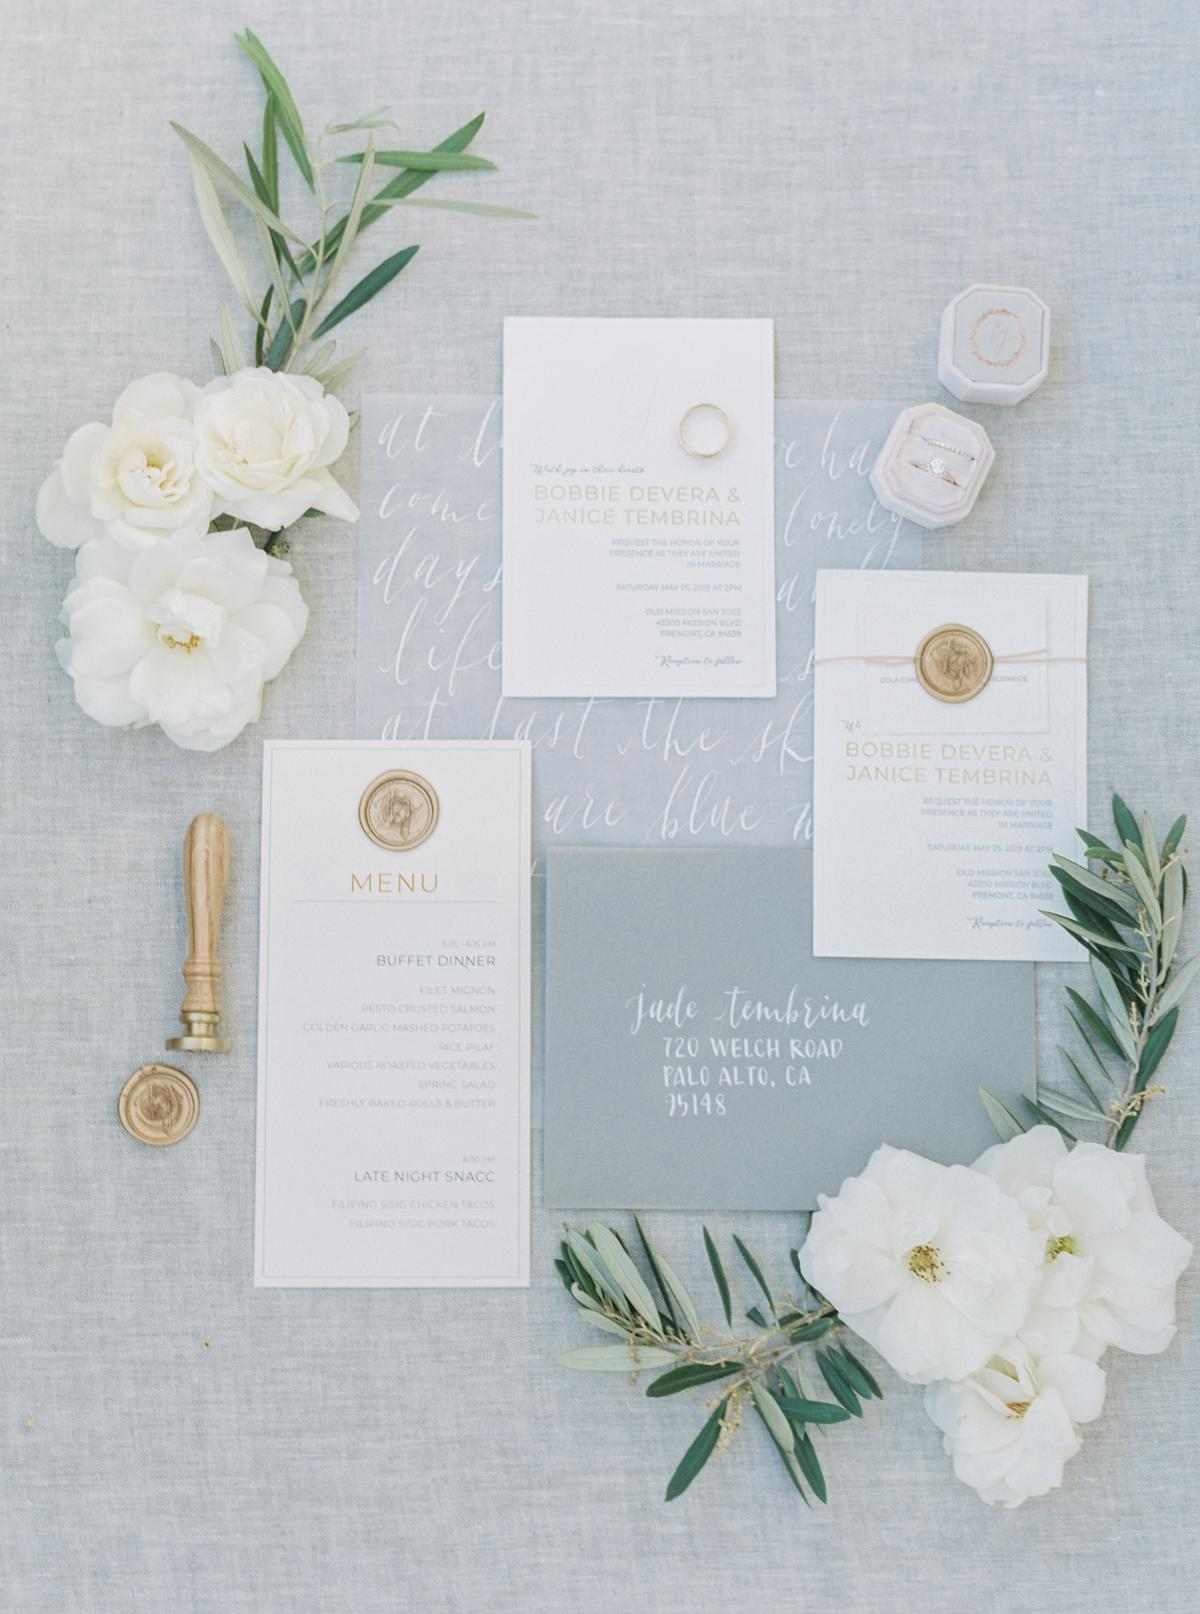 Janice & Bobbie's Spring Wedding | Calligraphy Script Self-Adhesive Wax Seals | Heirloom Seals